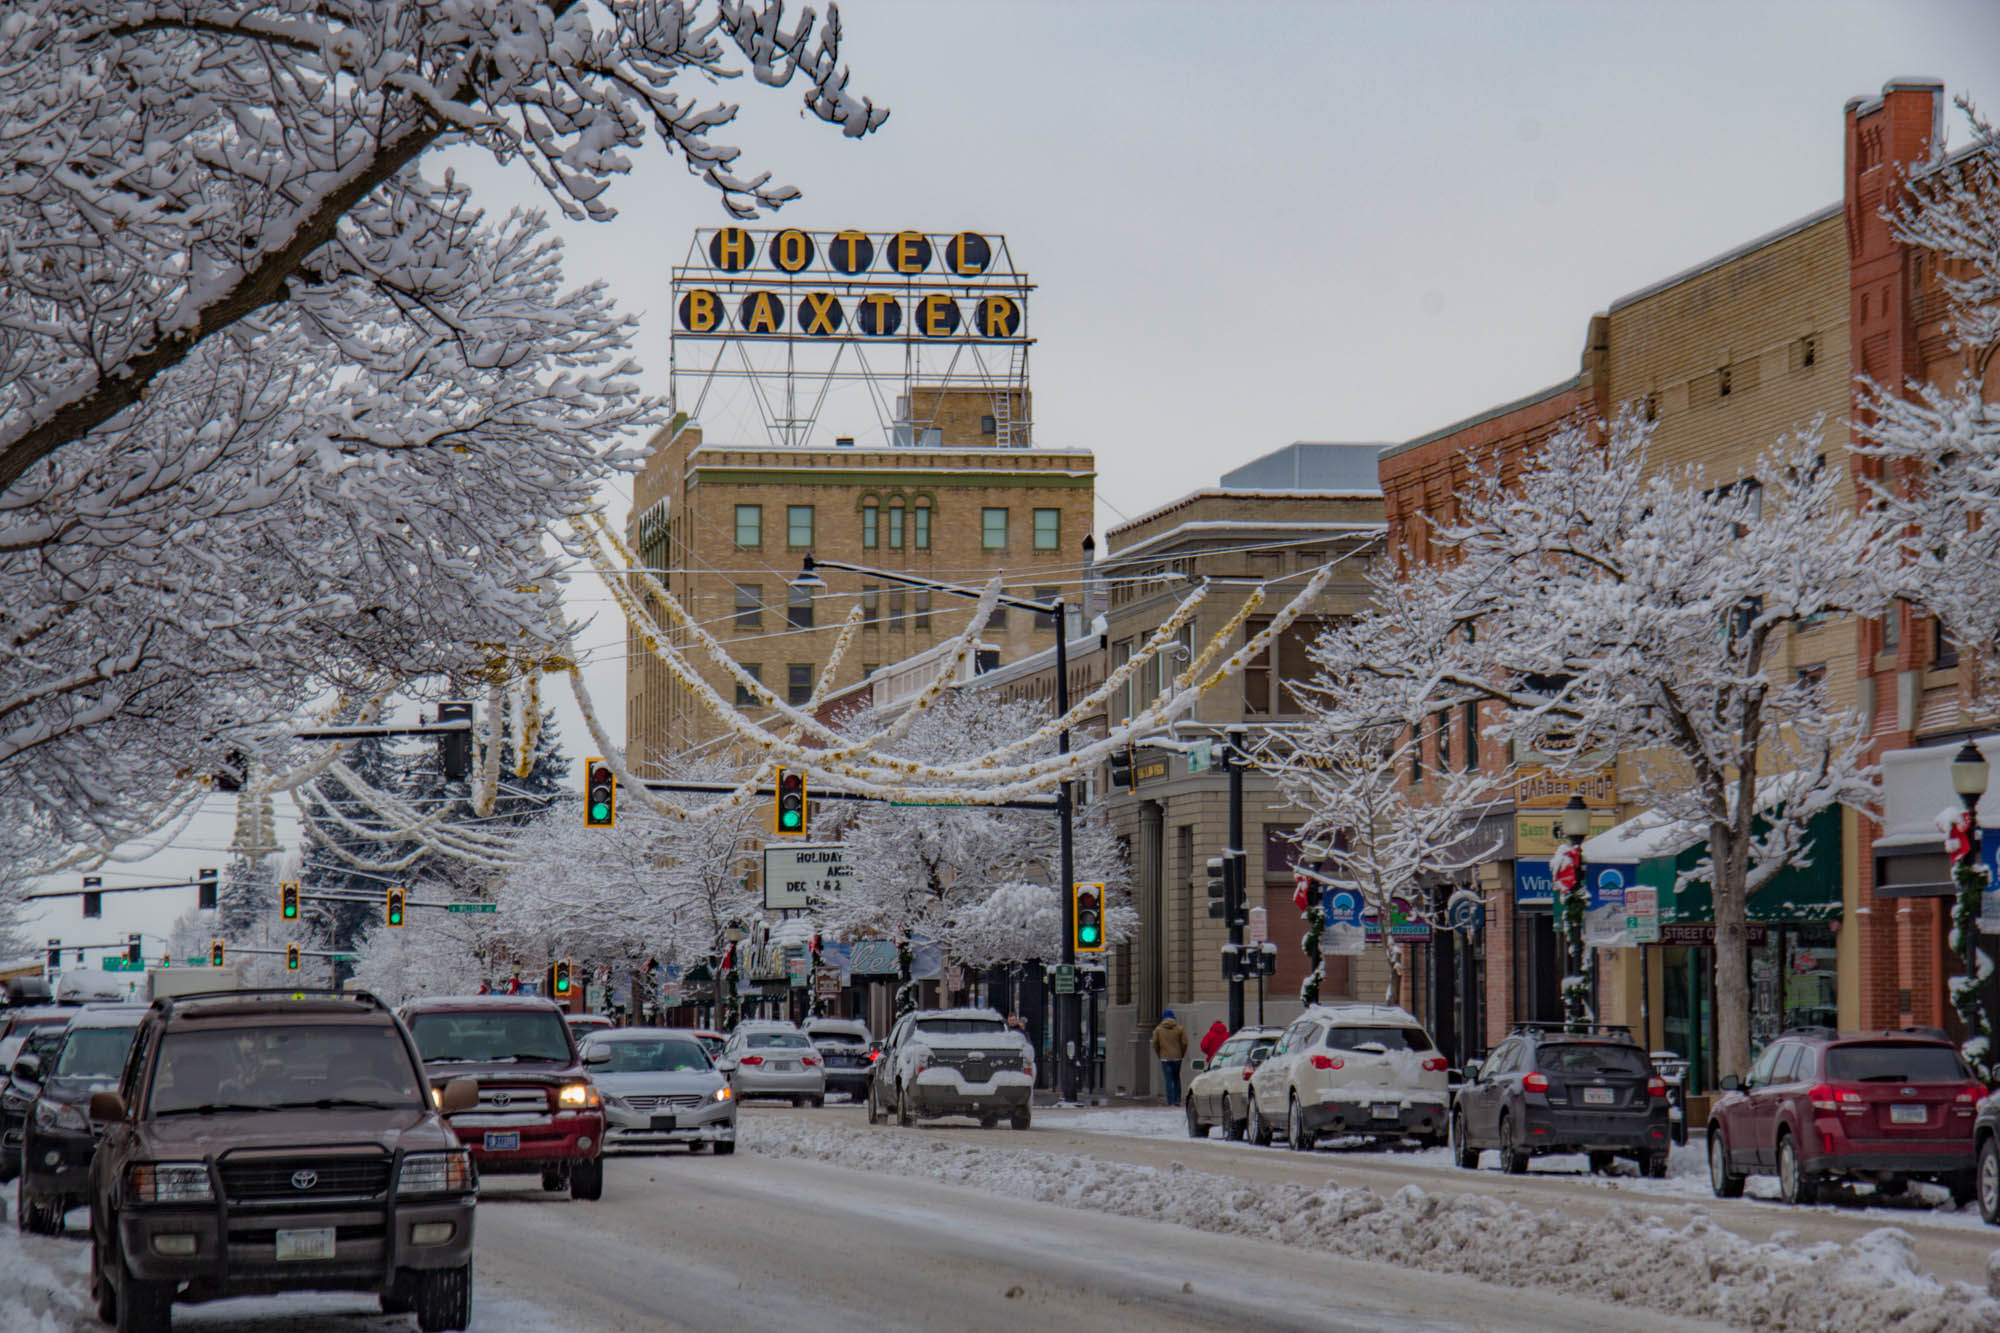 downtown Bozeman in the winter